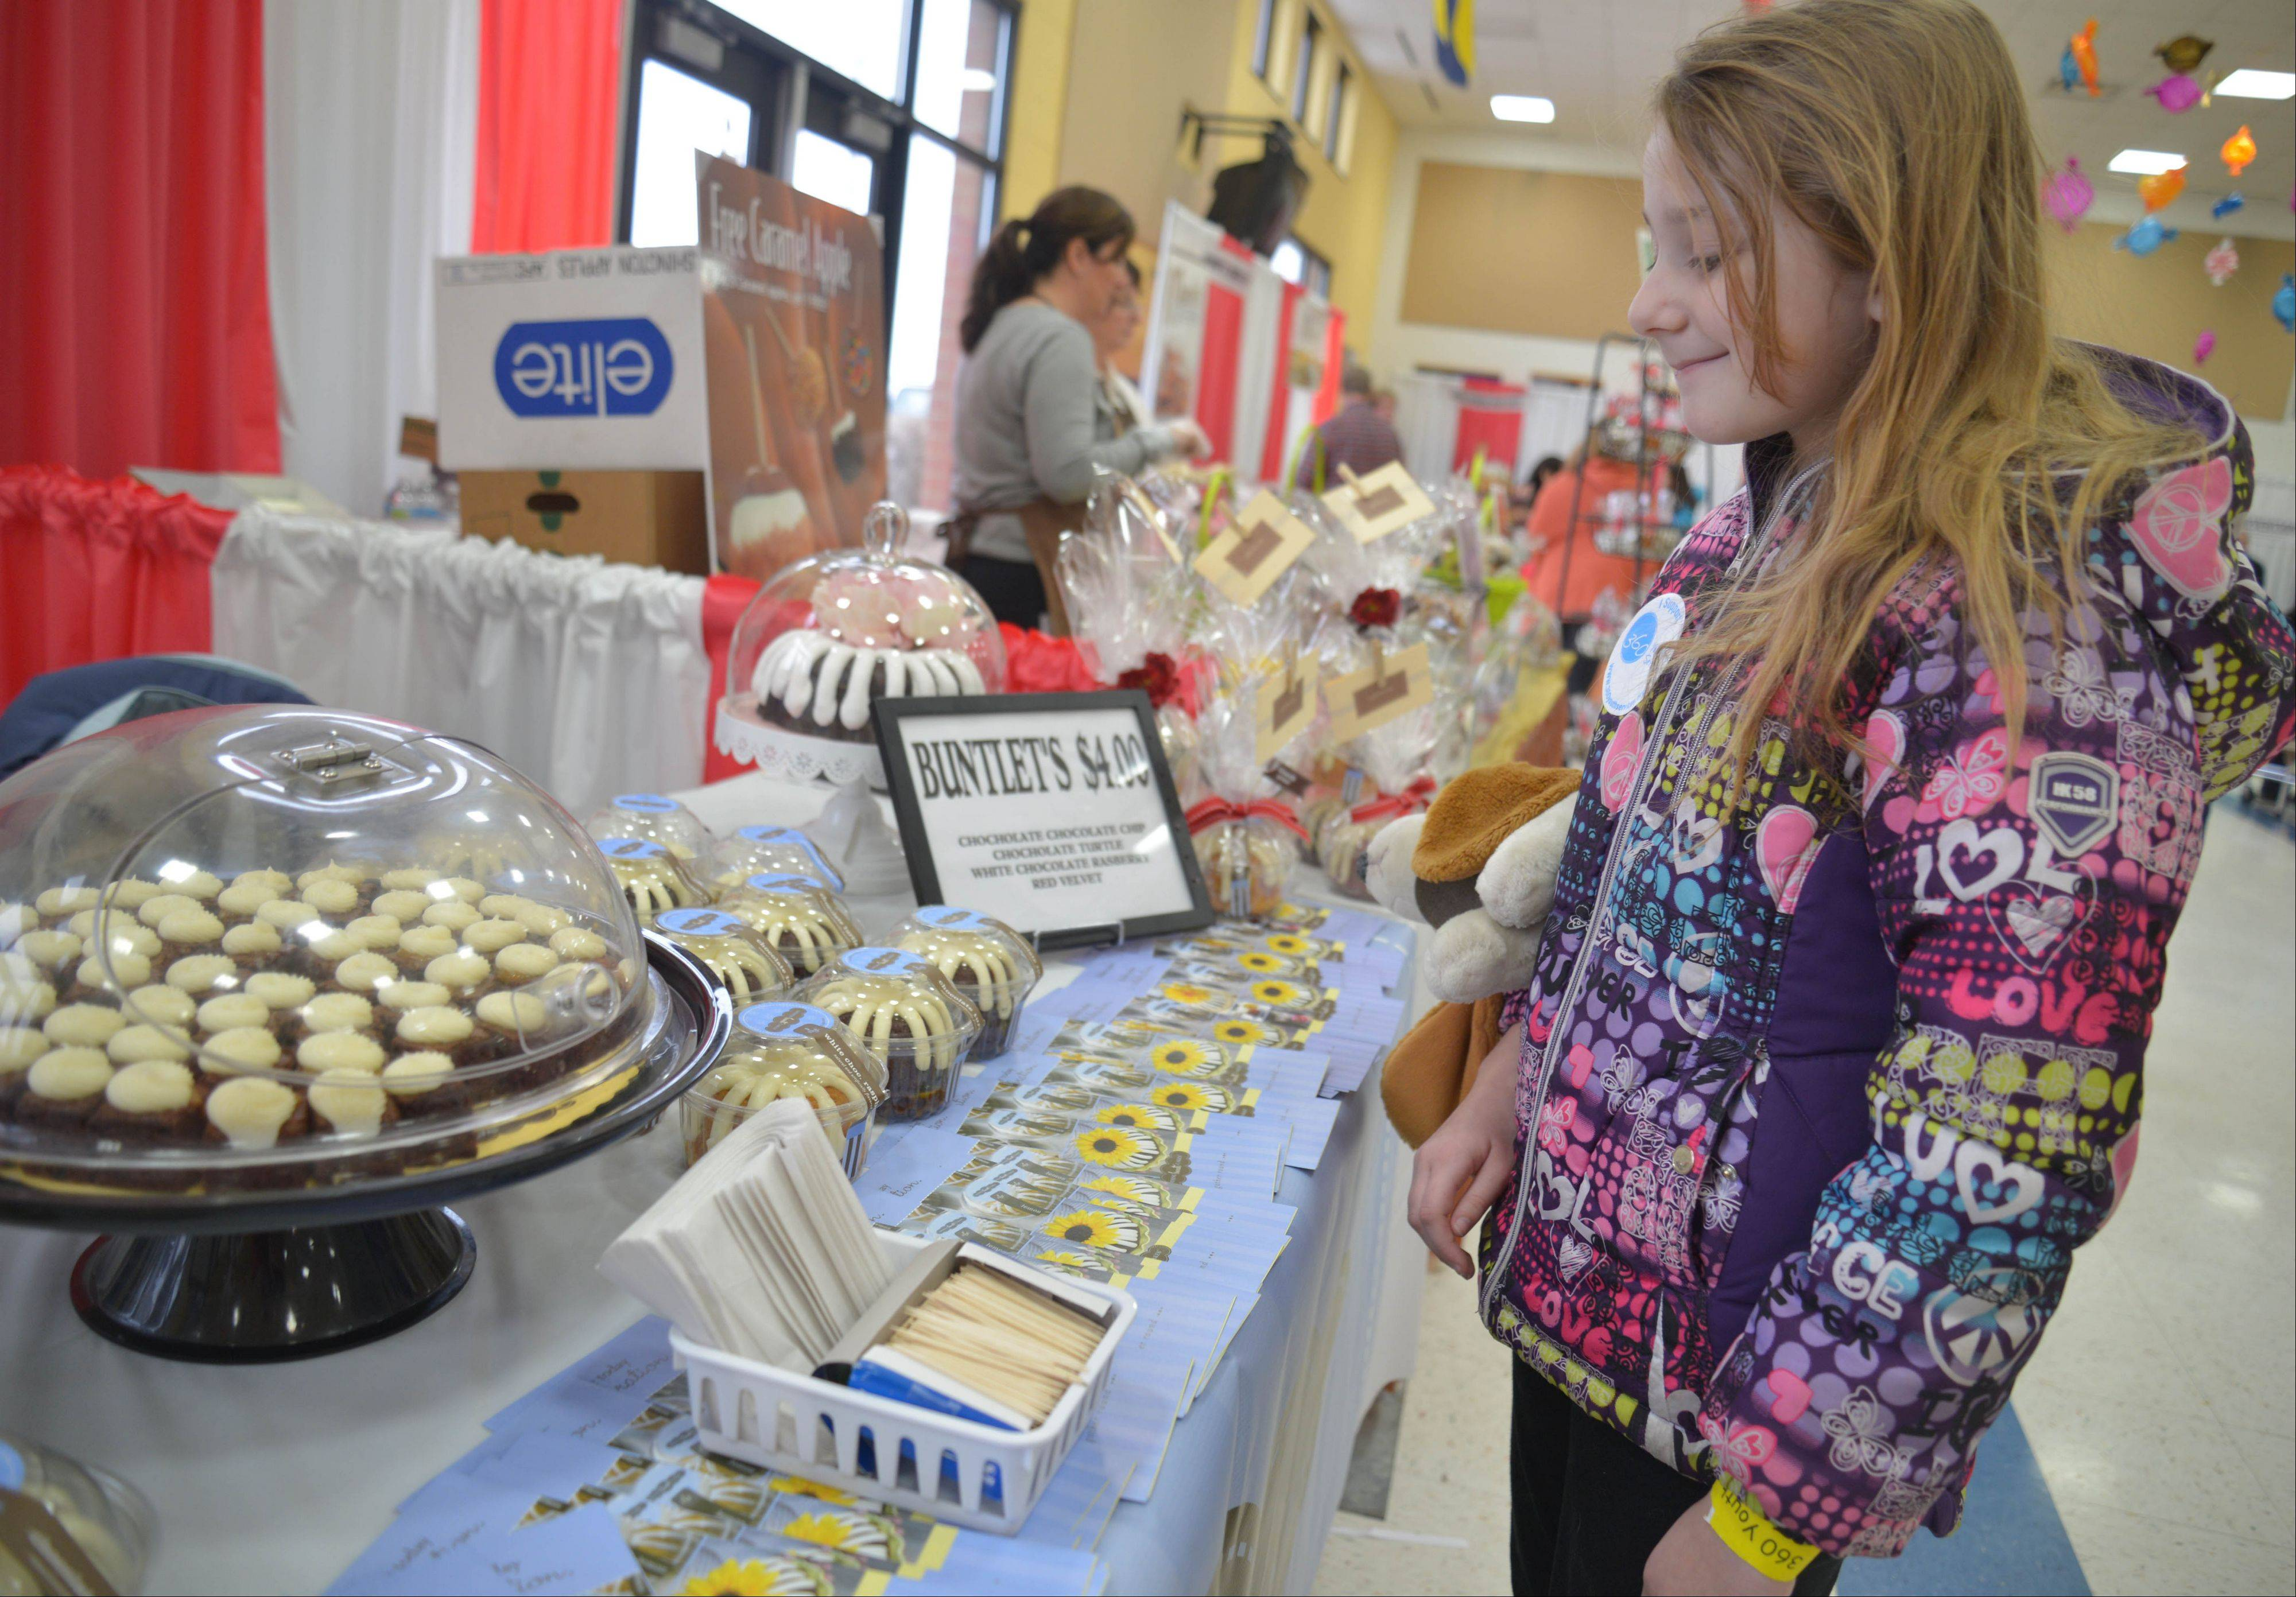 Abby Waitekus, 10, of Yorkville looks for something to snack on at the 360 Youth Services 11th annual Chocolate Festival Saturday at the Neuqua Valley Freshman Center.